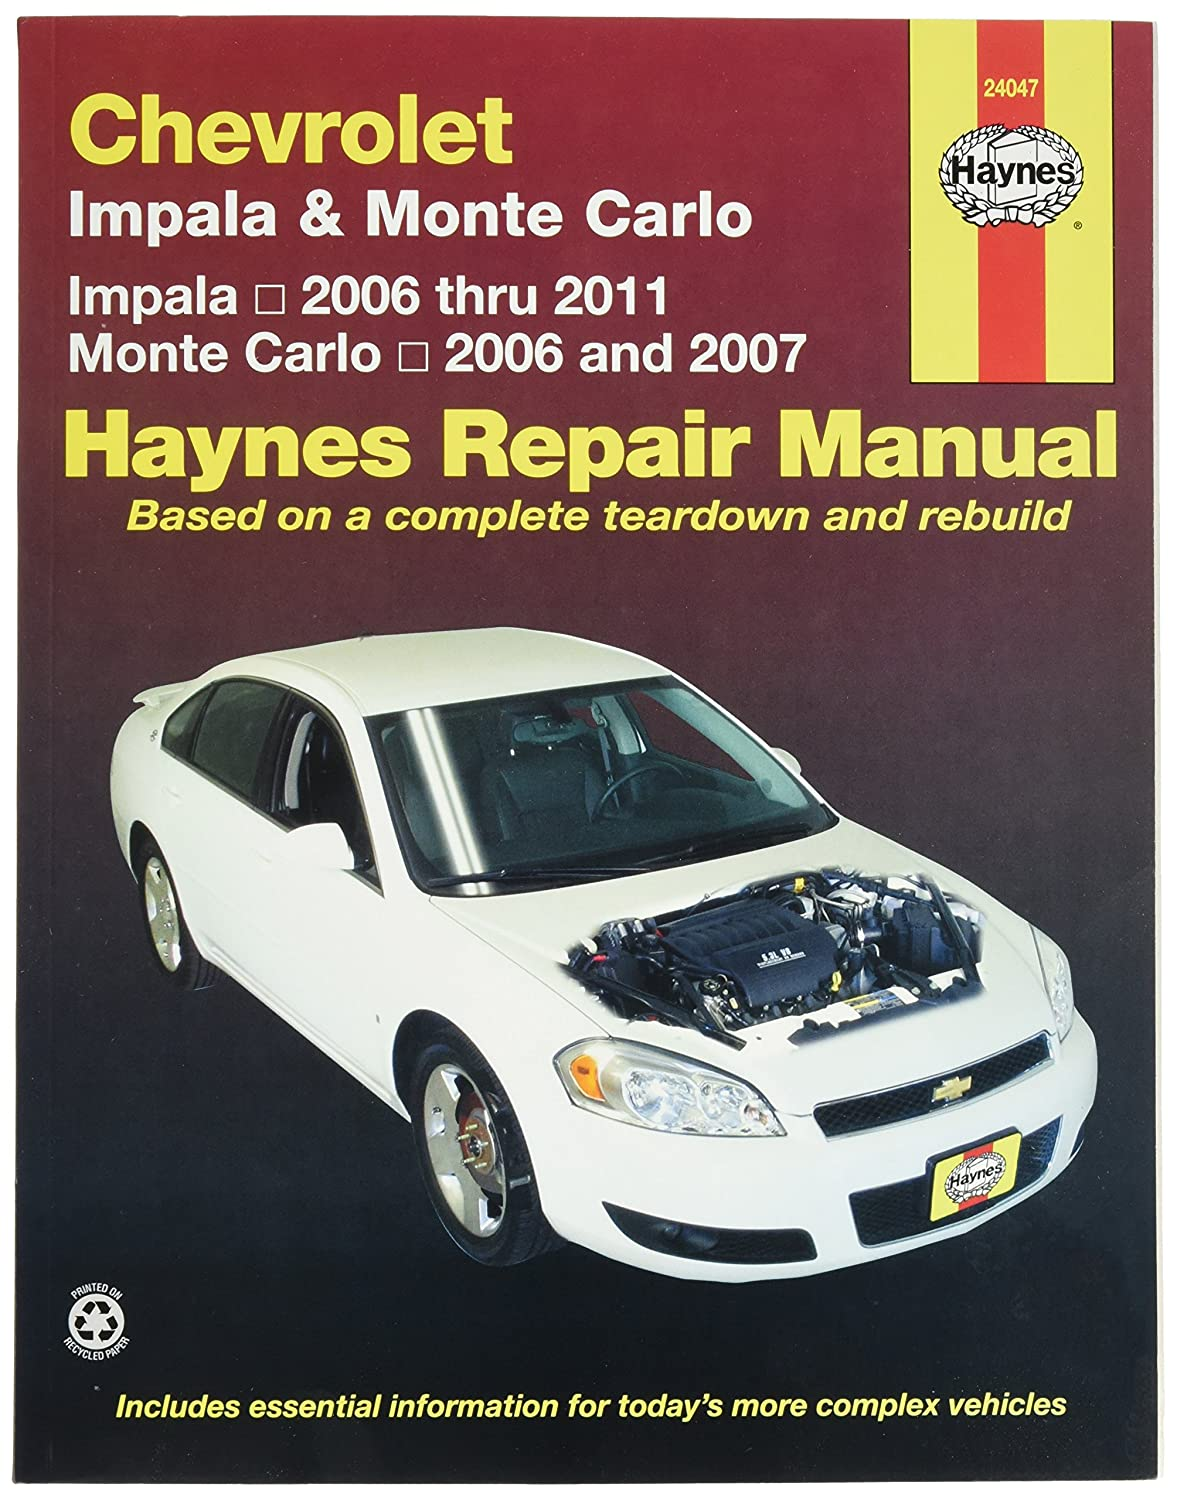 Amazon.com: Chevrolet Impala (2006-2011) and Monte Carlo (2006-2007) Haynes  Repair Manual: Automotive